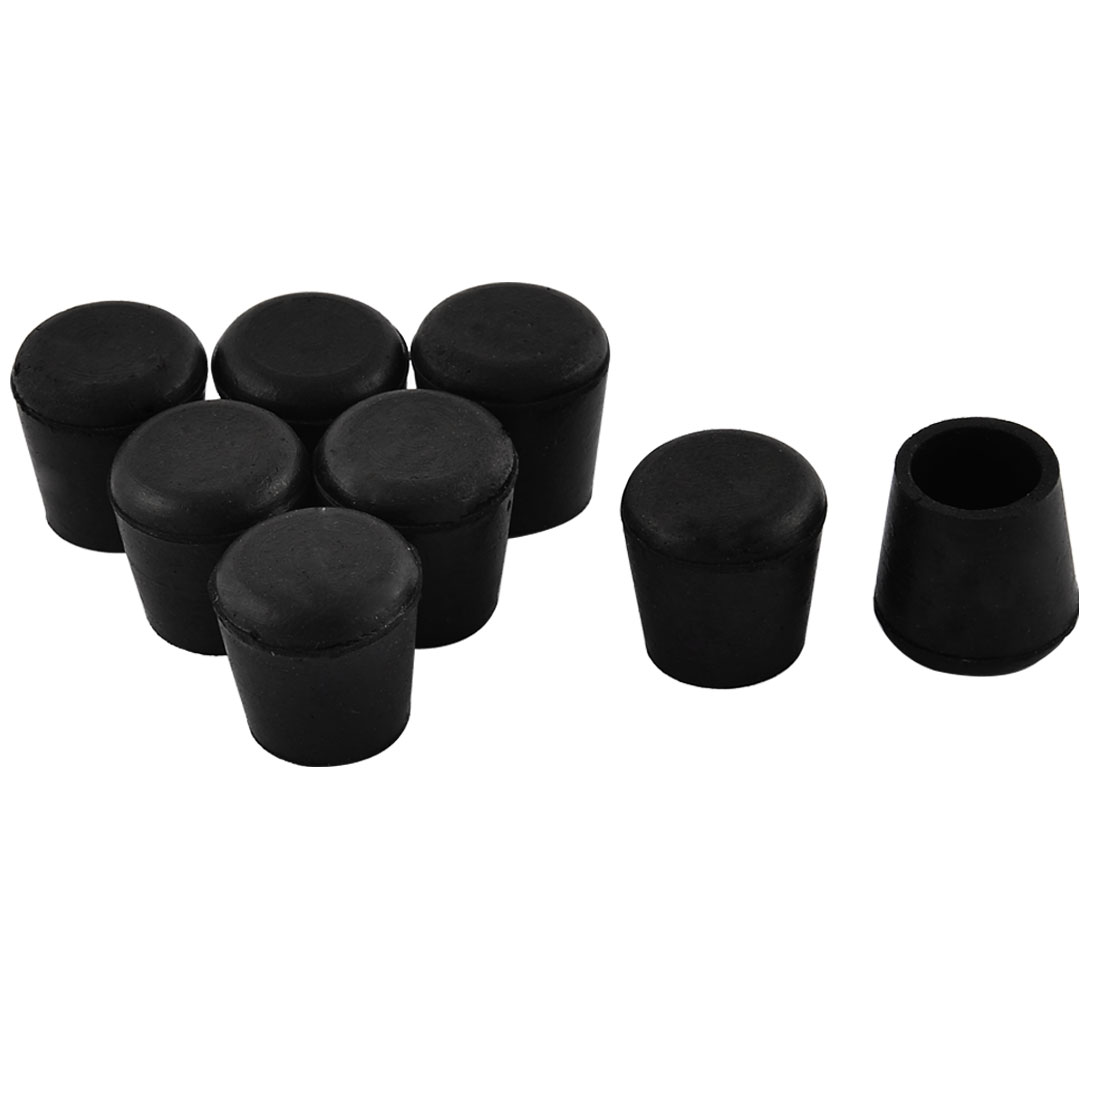 Tools Furniture Hemispherical 14mmx7mm Adhesive Rubber Pads Protector 6 In 1